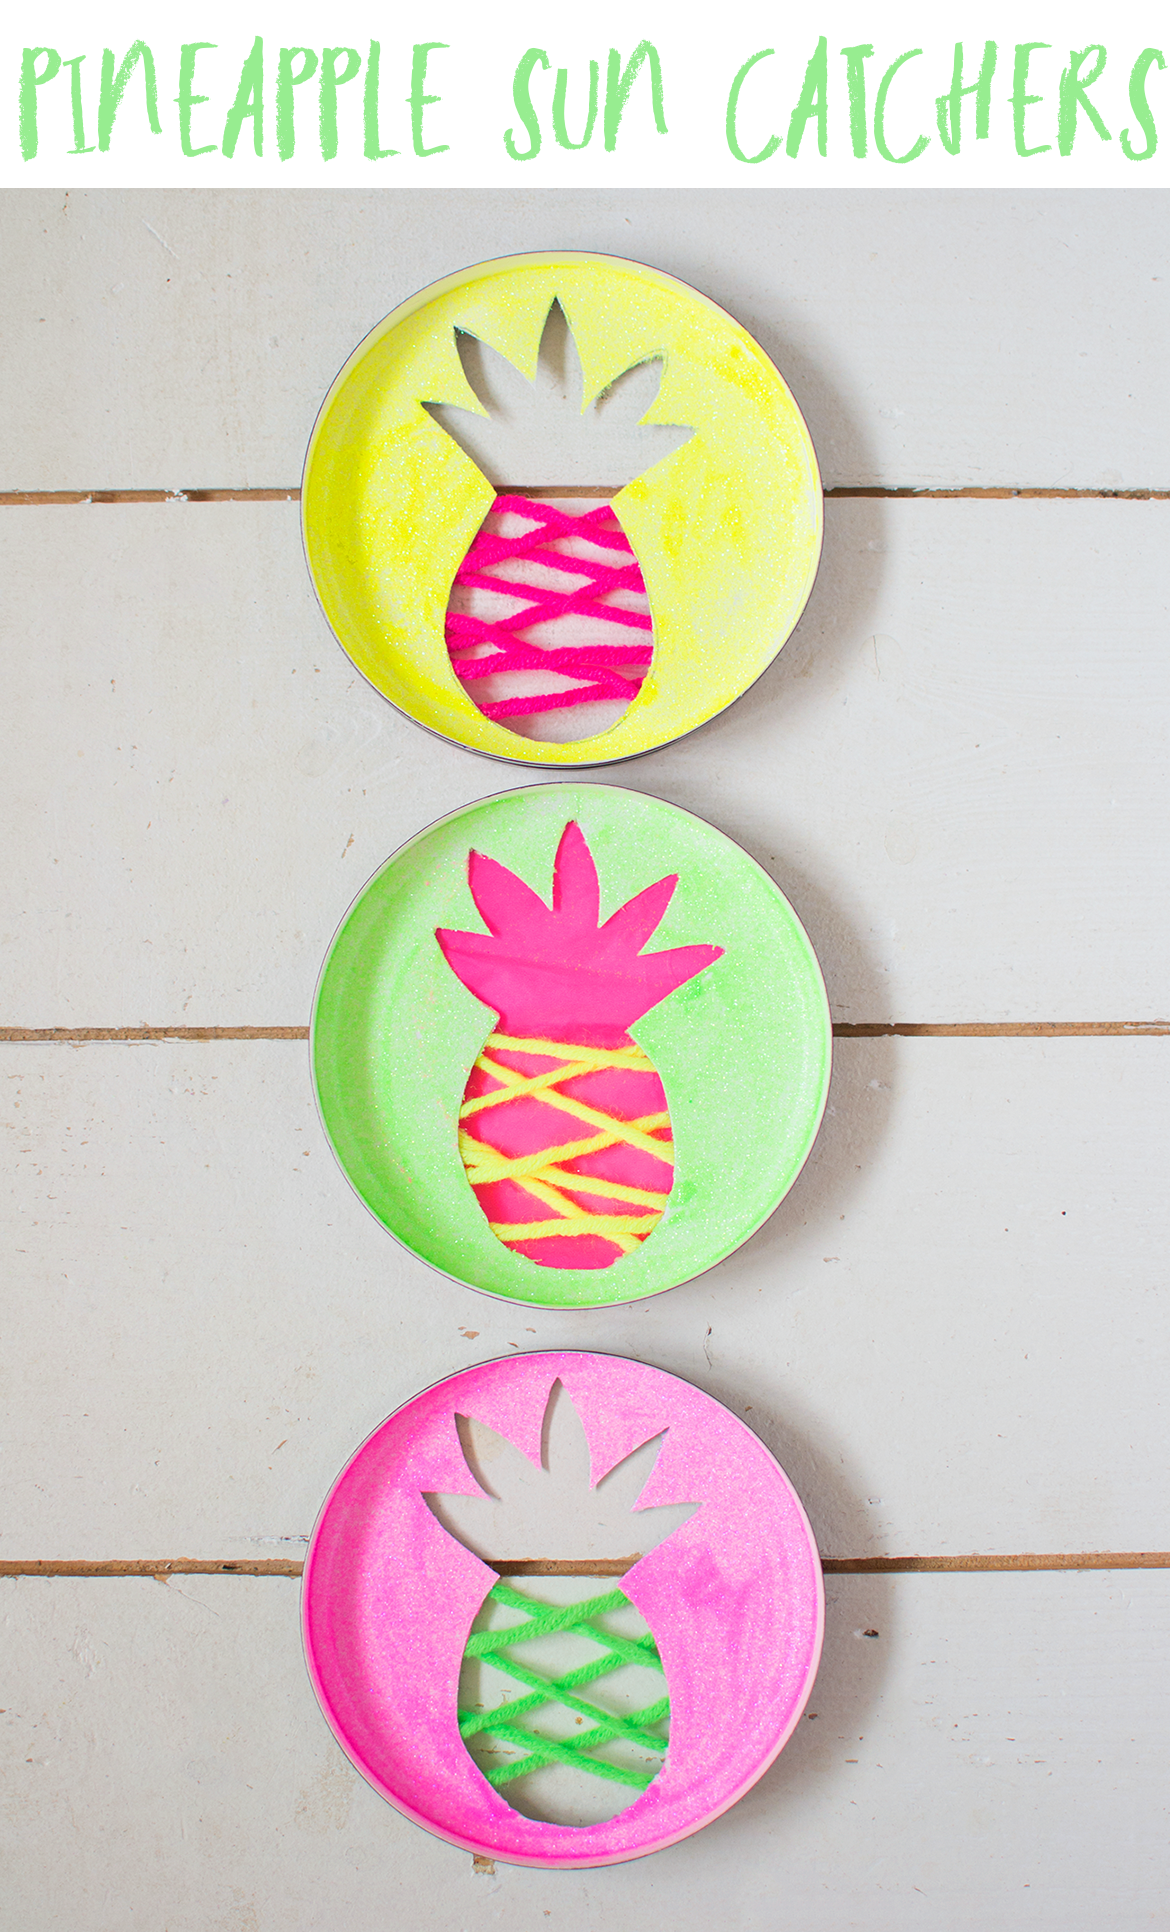 pineapple sun catchers